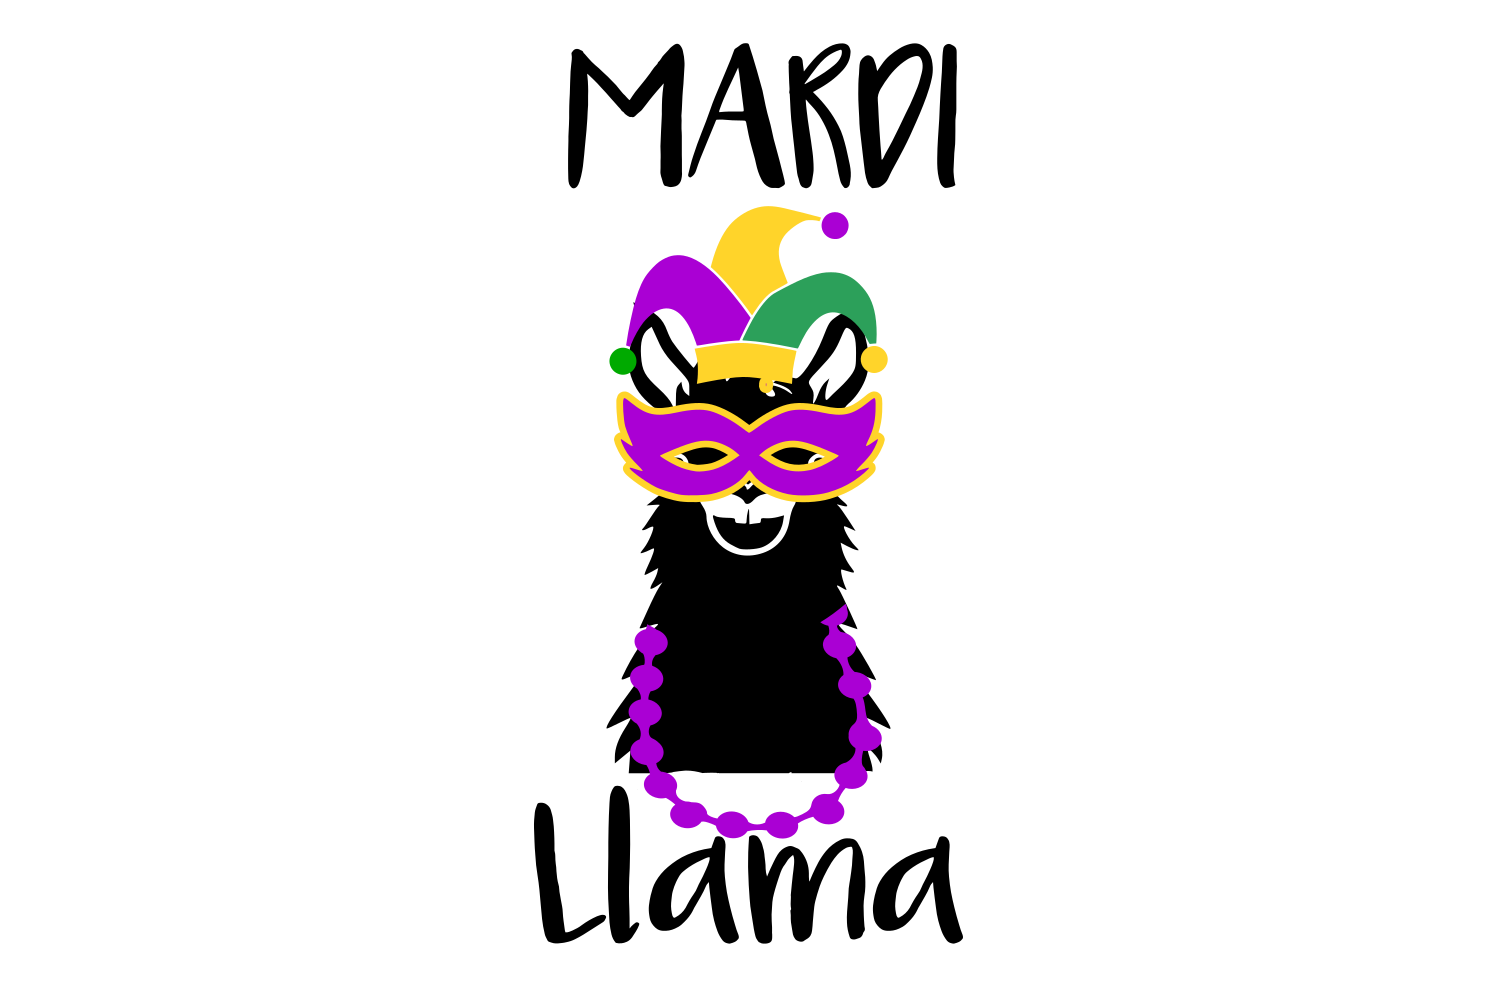 Download Free Mardi Gras Llama Digital Svg File Graphic By Auntie for Cricut Explore, Silhouette and other cutting machines.